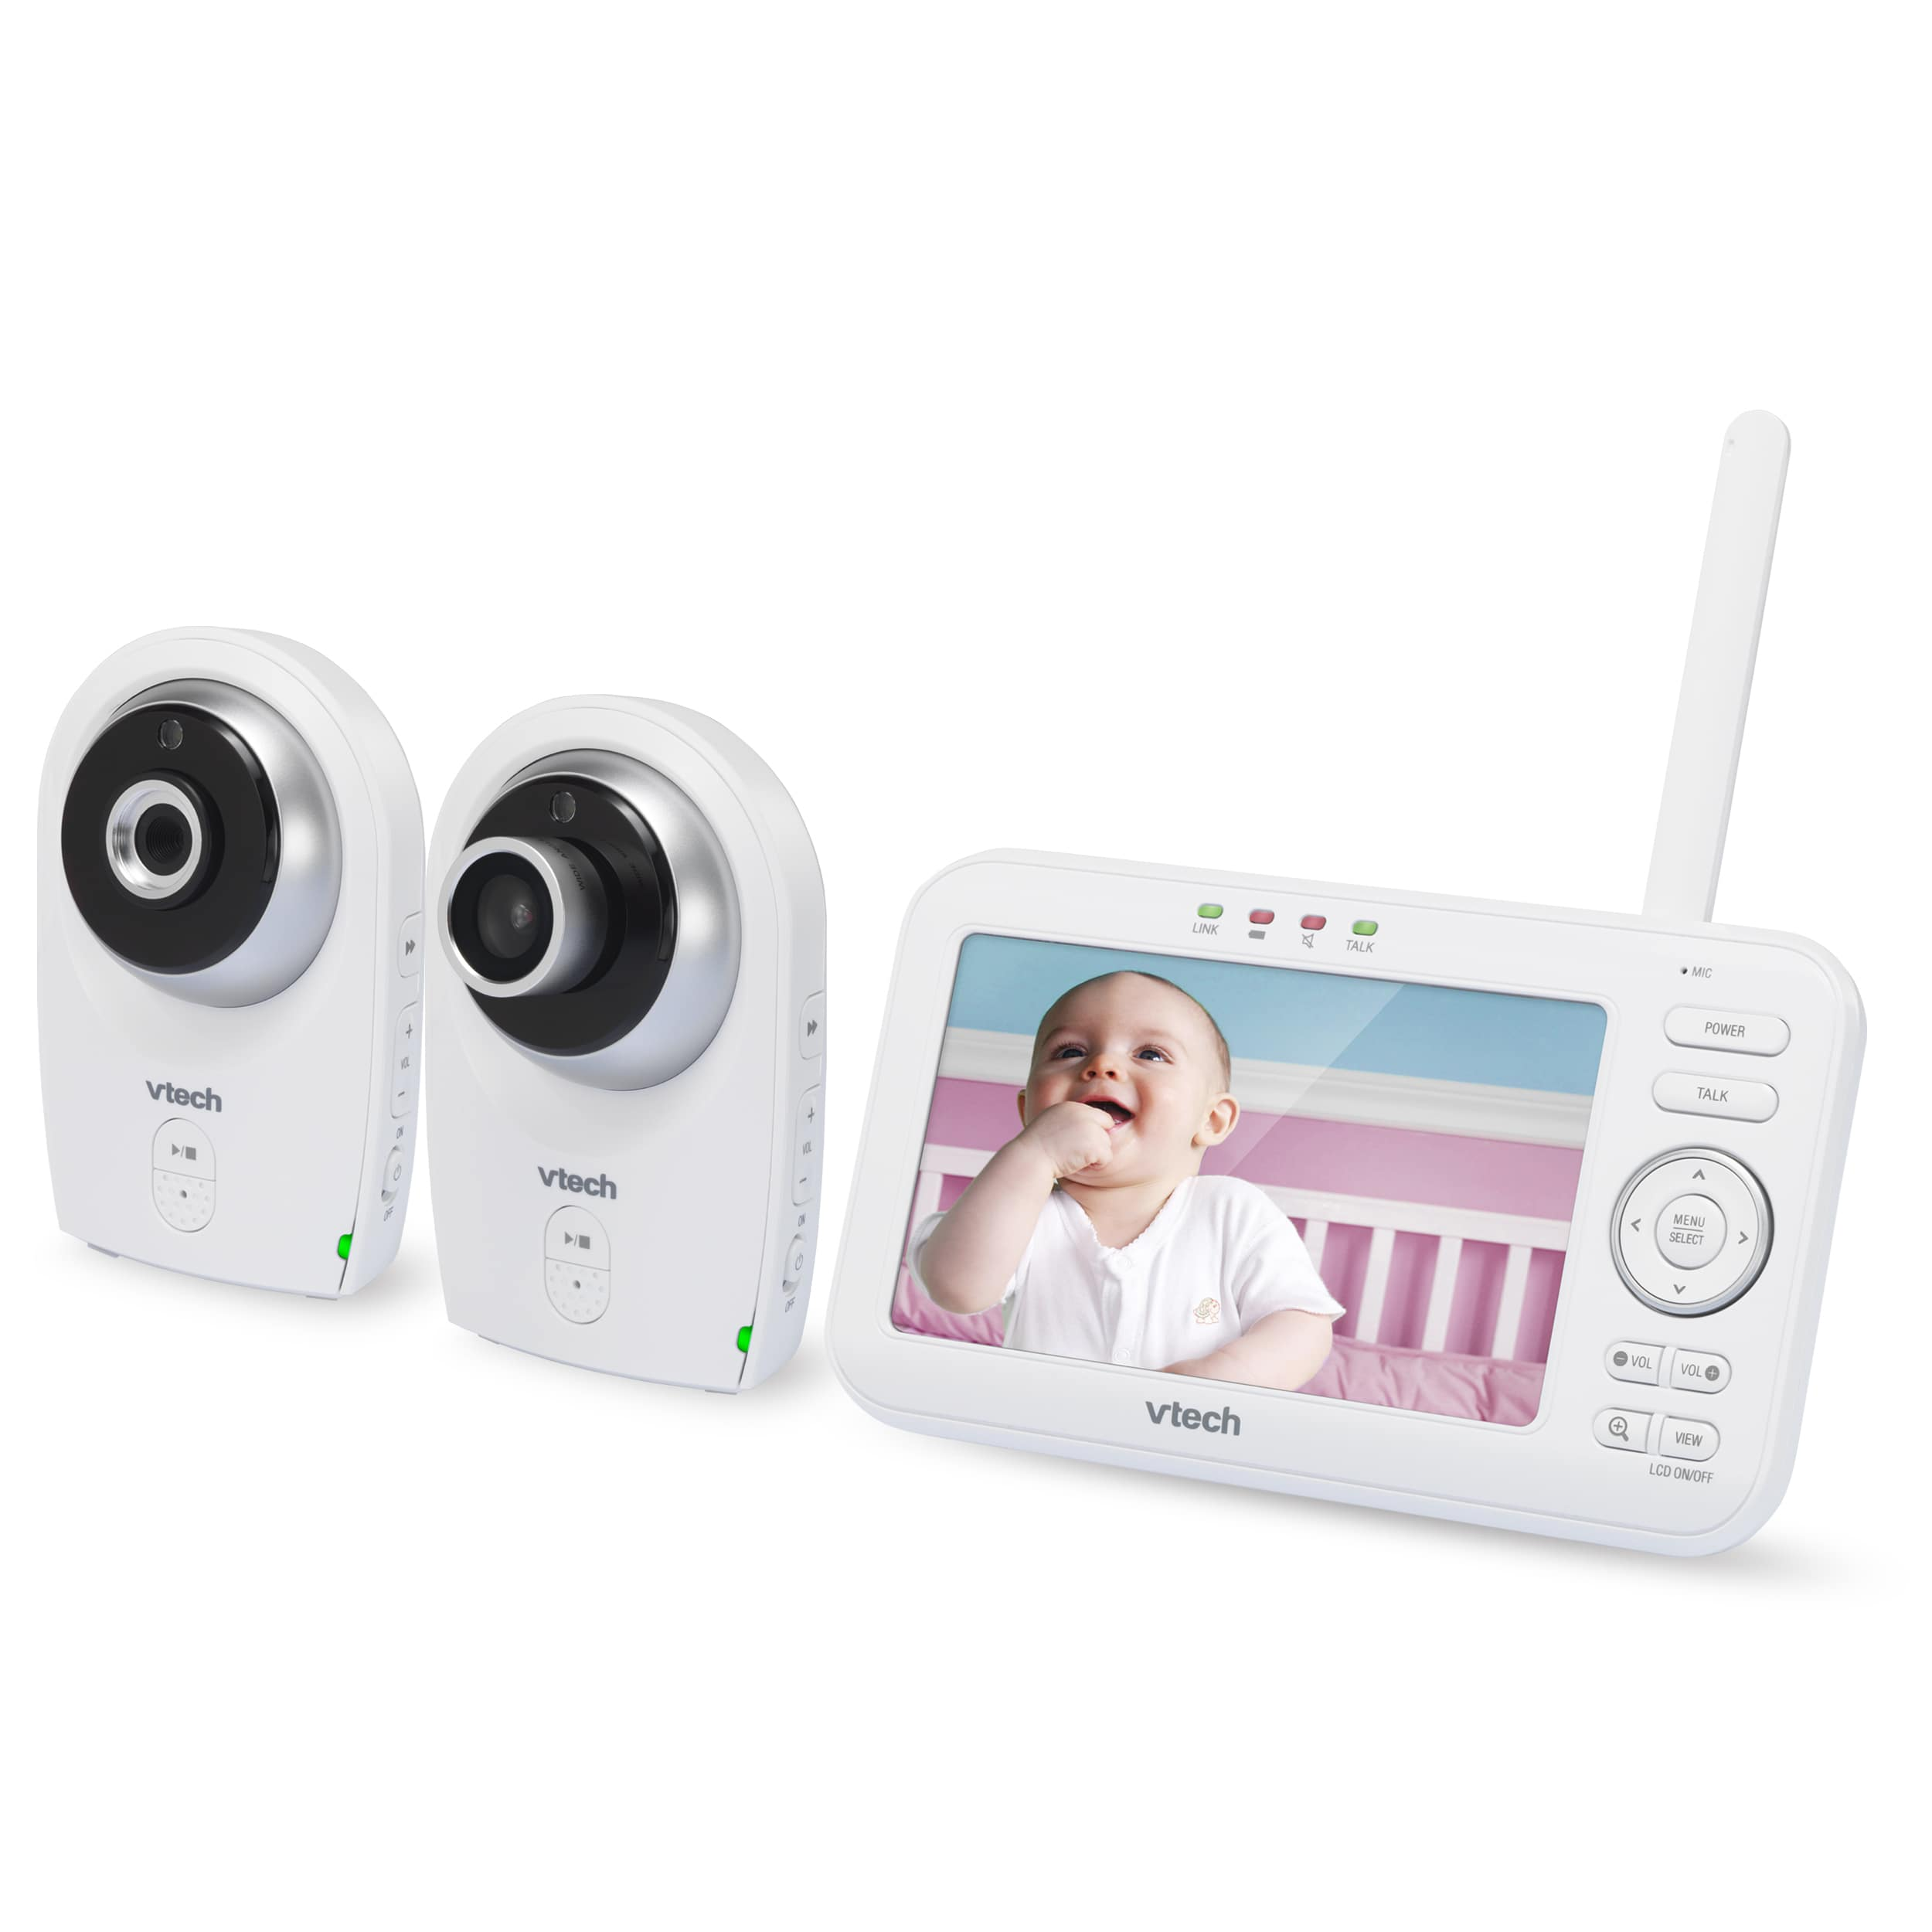 5 Quot Digital Video Baby Monitor With 2 Cameras Wide Angle